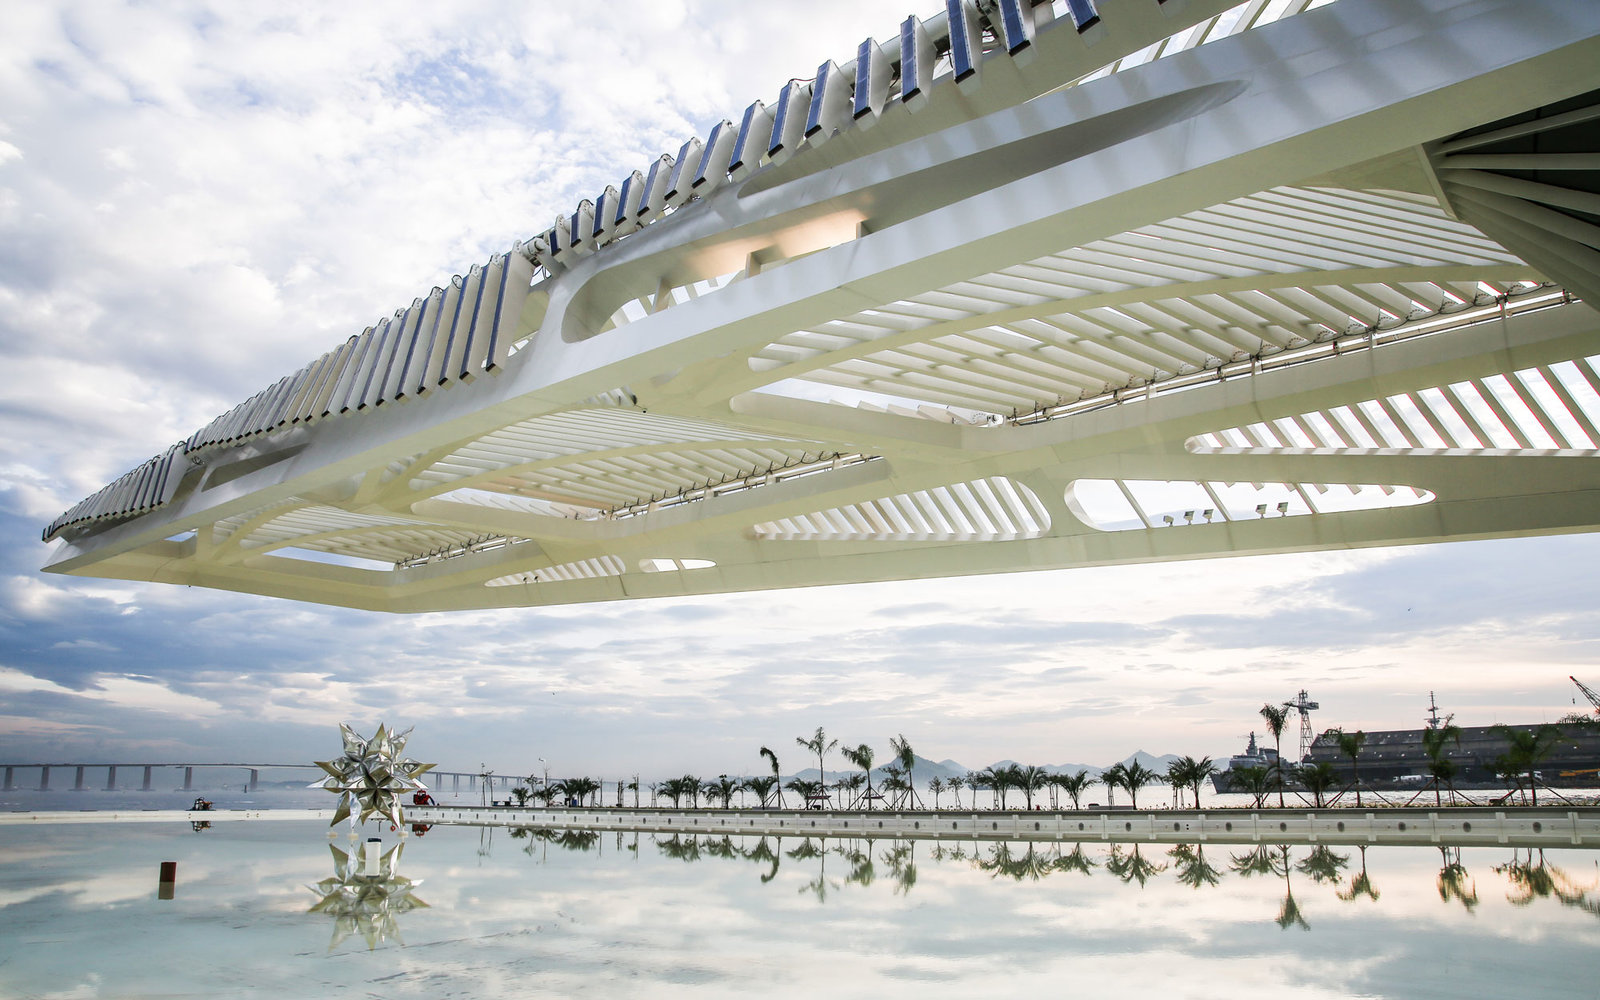 Museum of Tomorrow Brazil